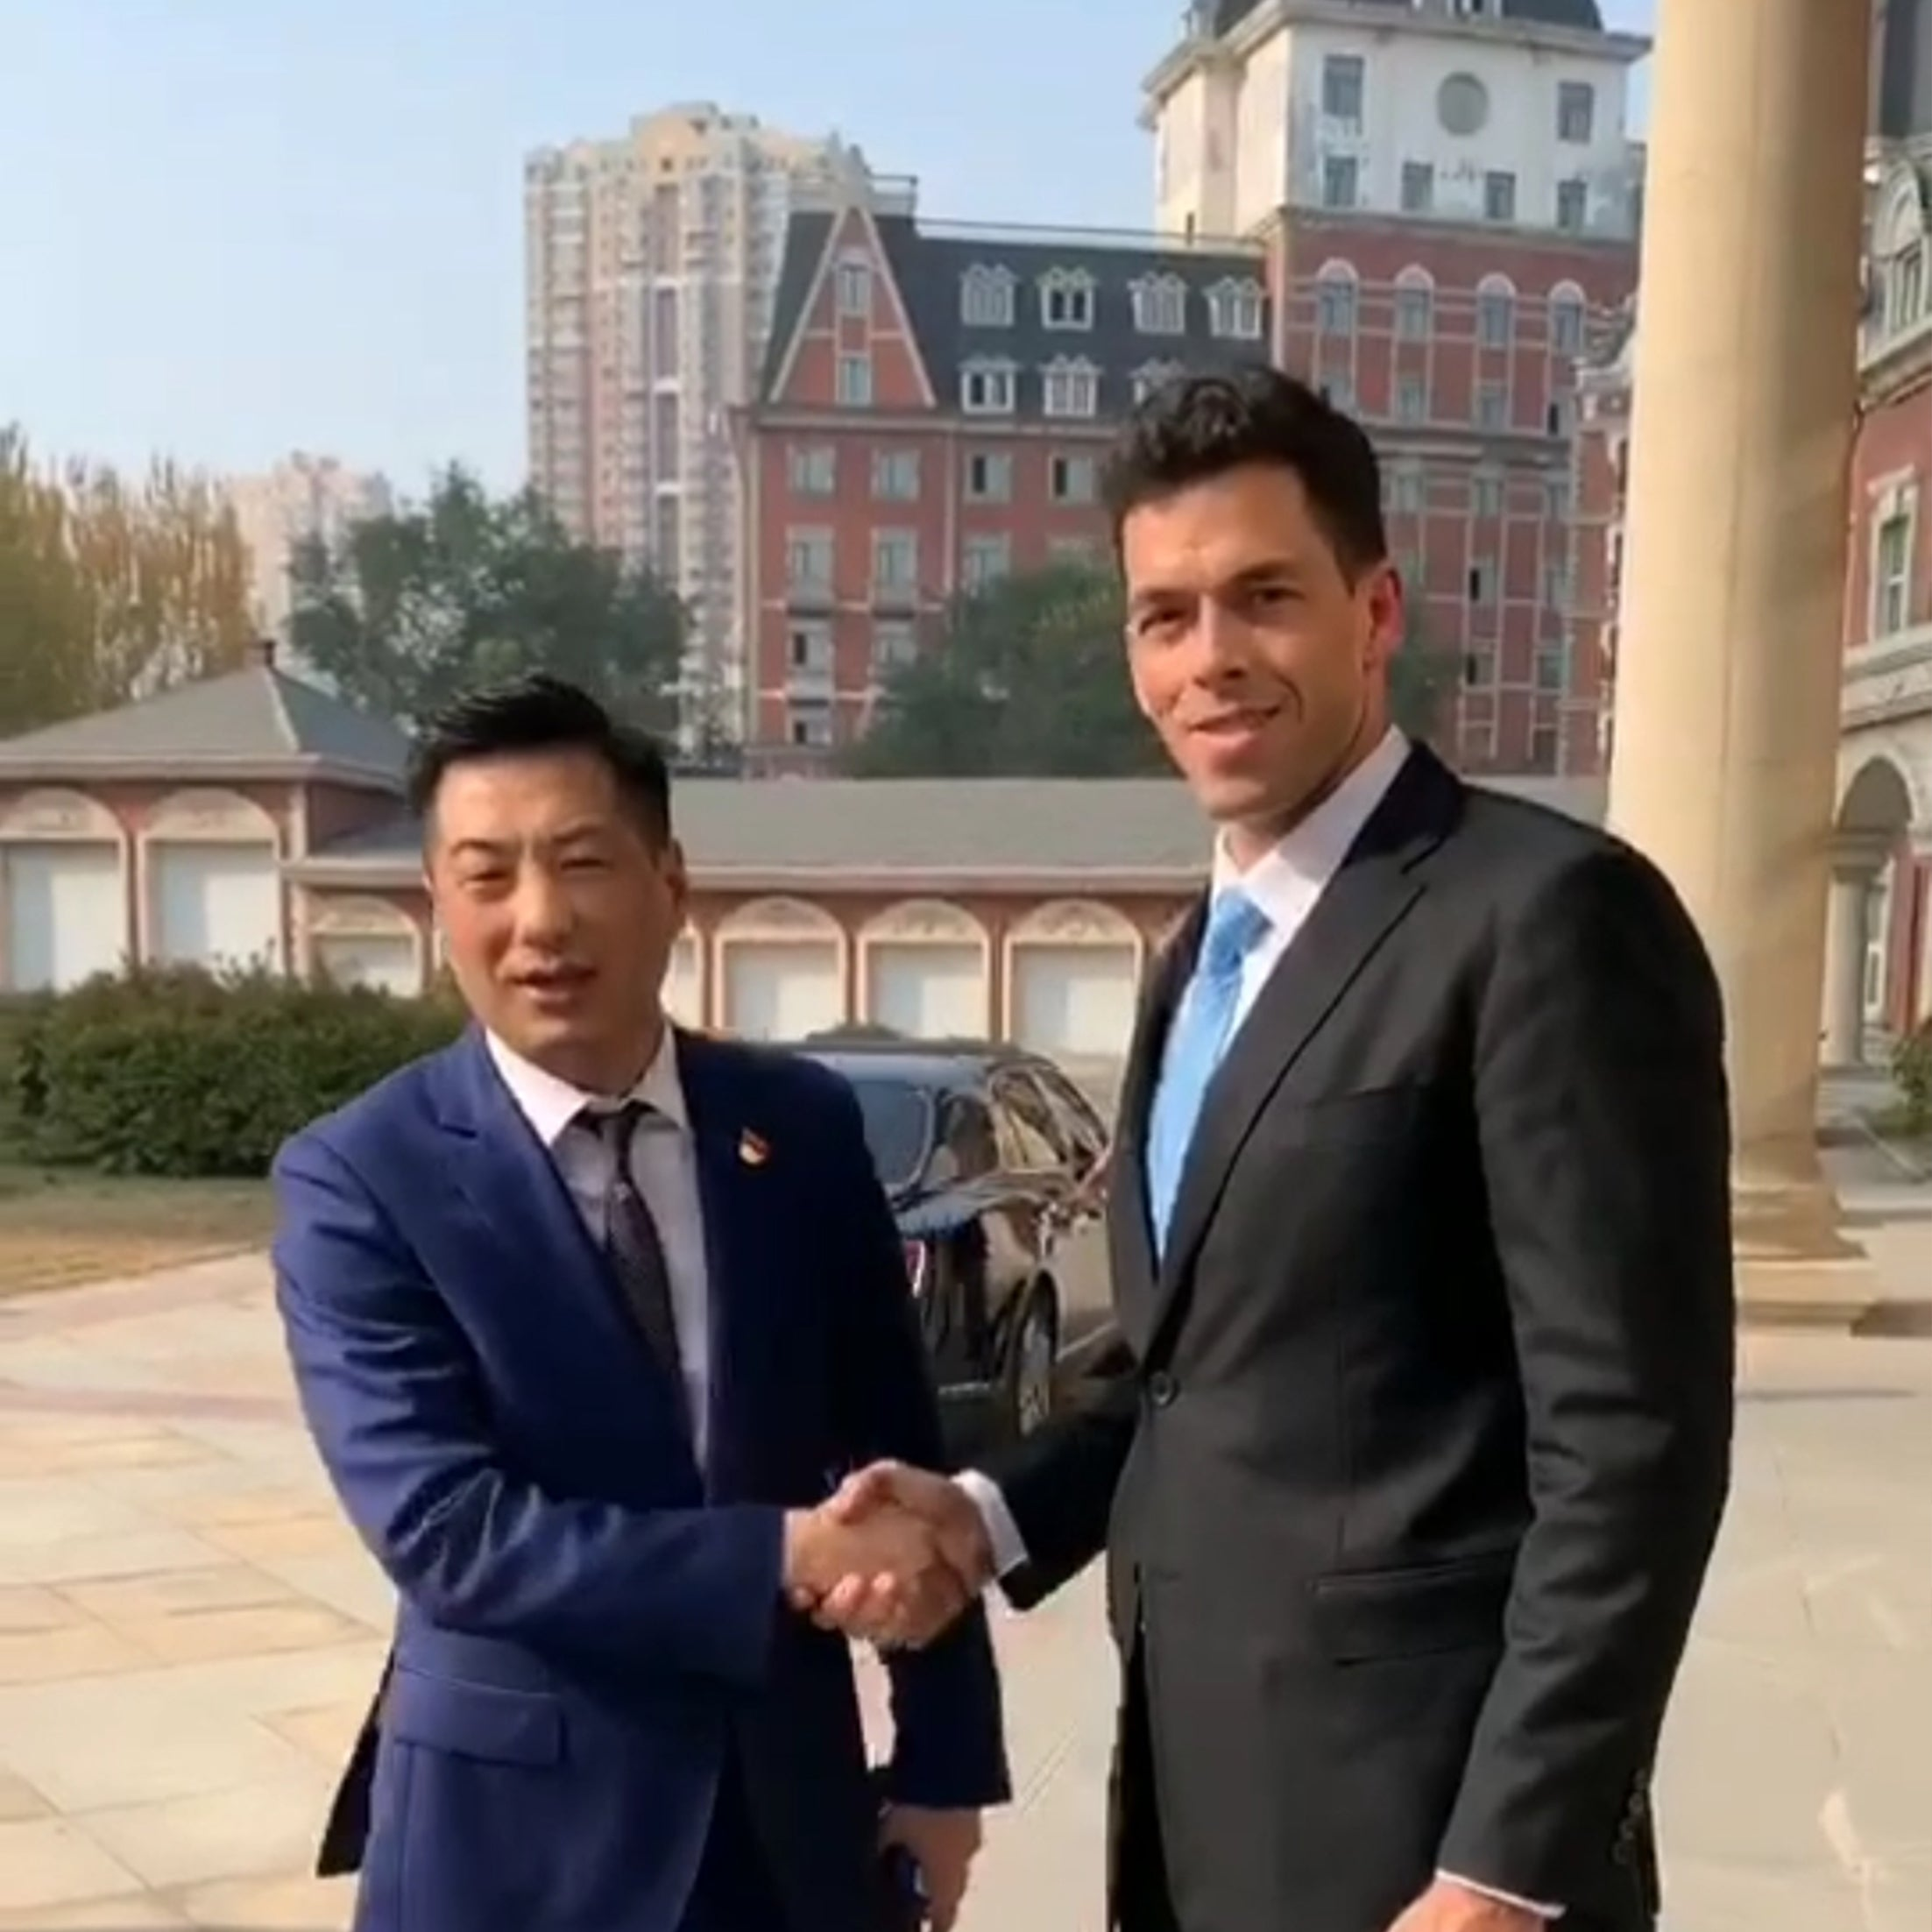 Fabian de Mortier with a senior government official in Liaoning, China